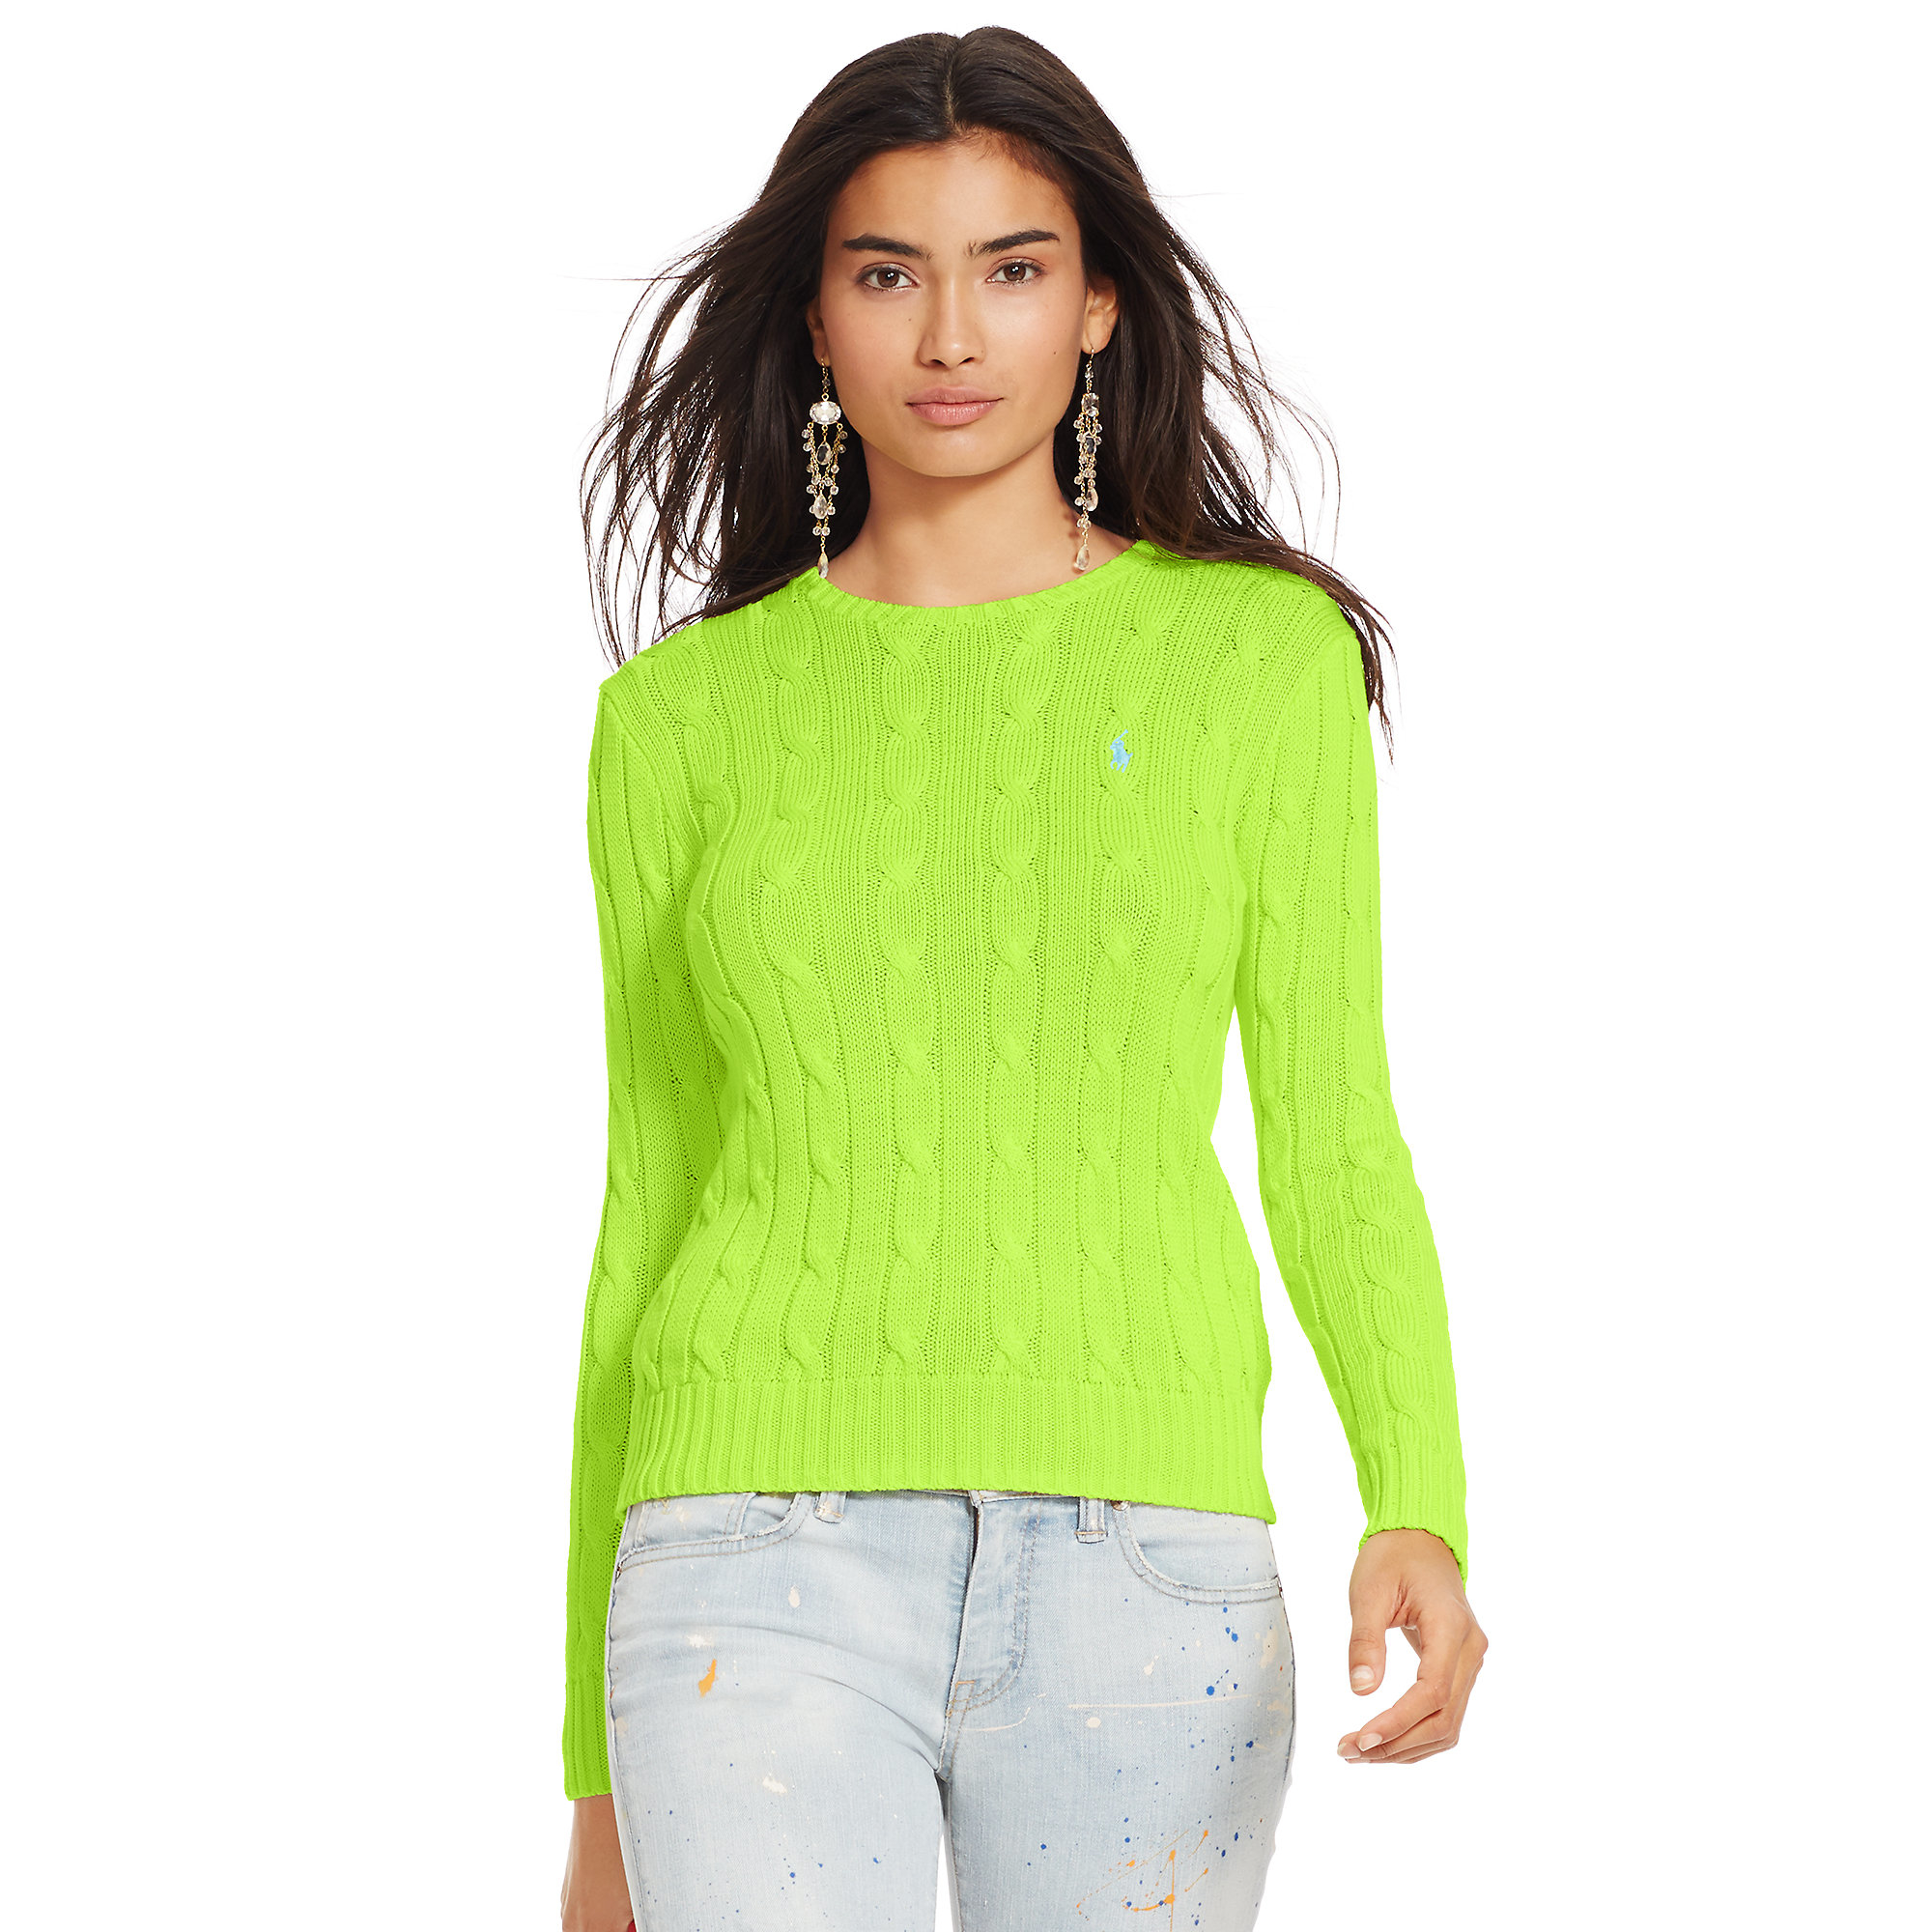 Polo ralph lauren Cable-knit Crewneck Sweater in Green | Lyst